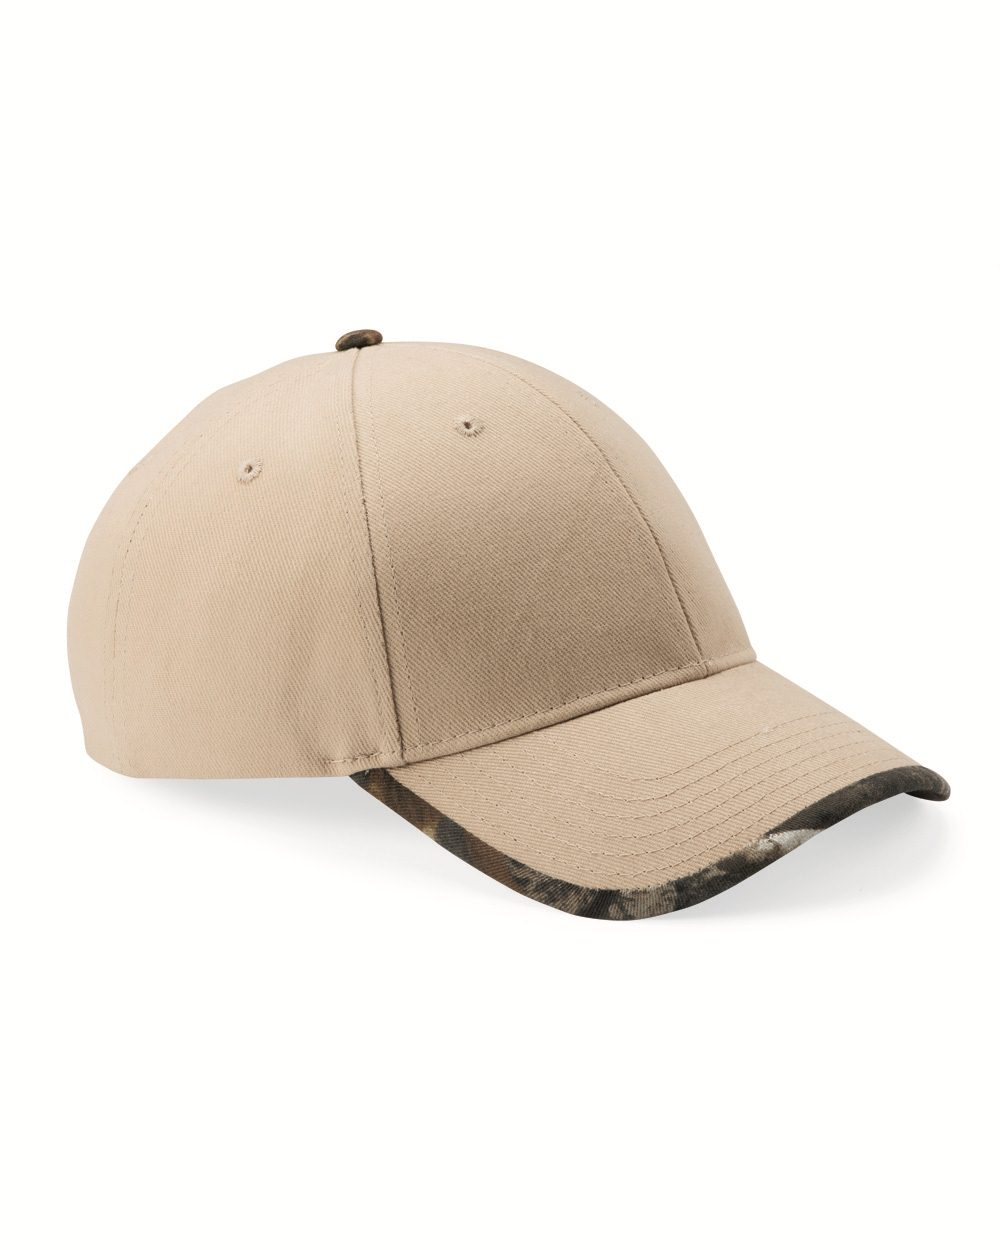 Kati LC26 - Solid Cap with Camouflage Bill